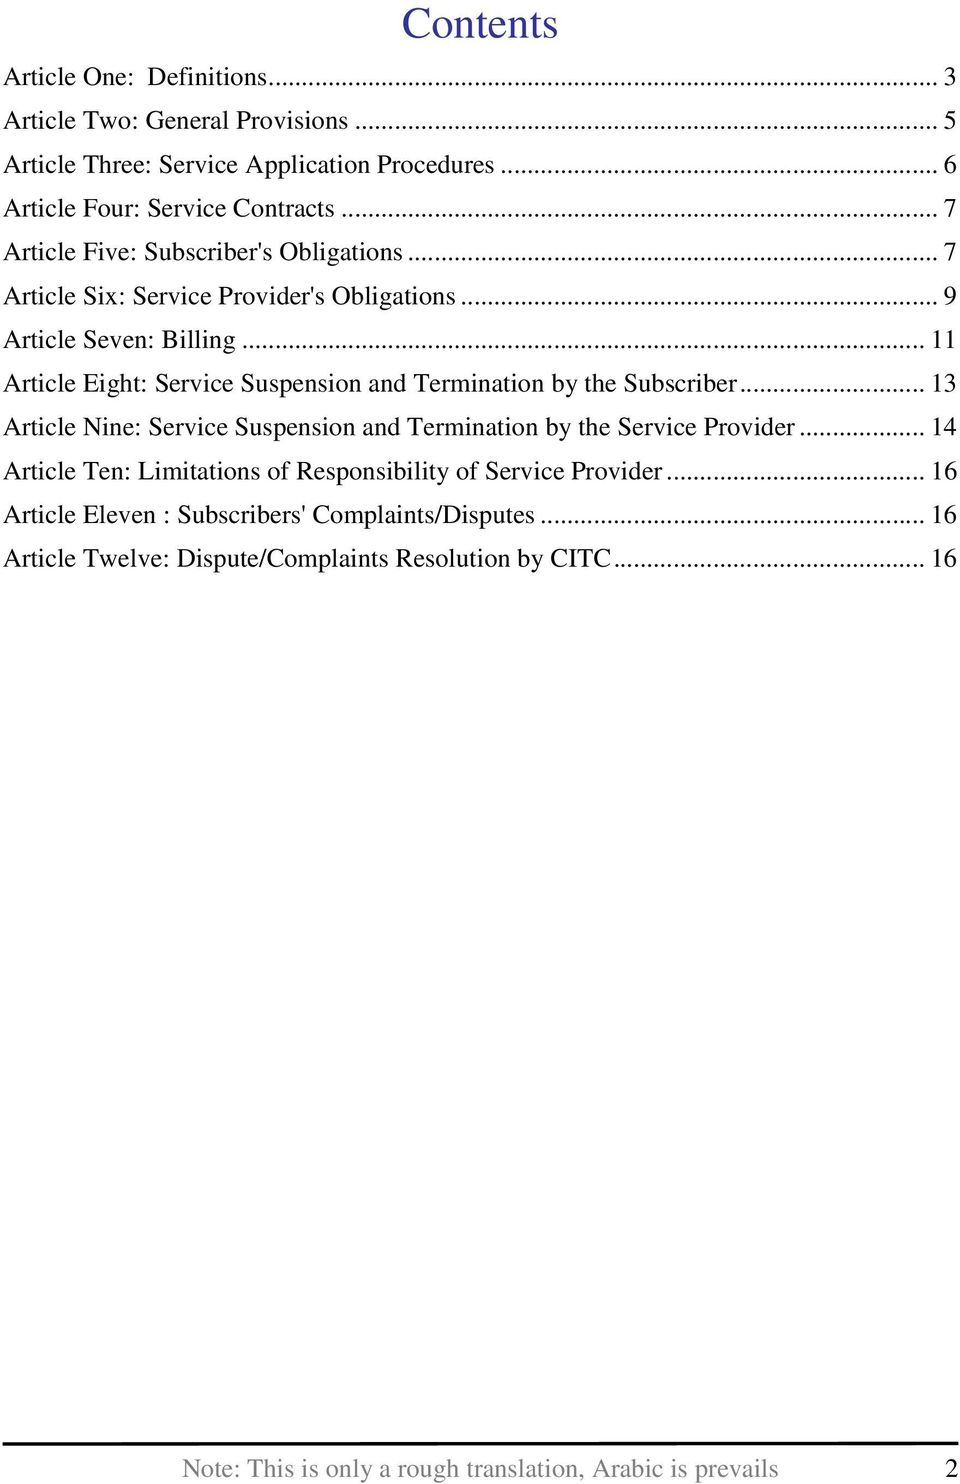 .. 11 Article Eight: Service Suspension and Termination by the Subscriber... 13 Article Nine: Service Suspension and Termination by the Service Provider.